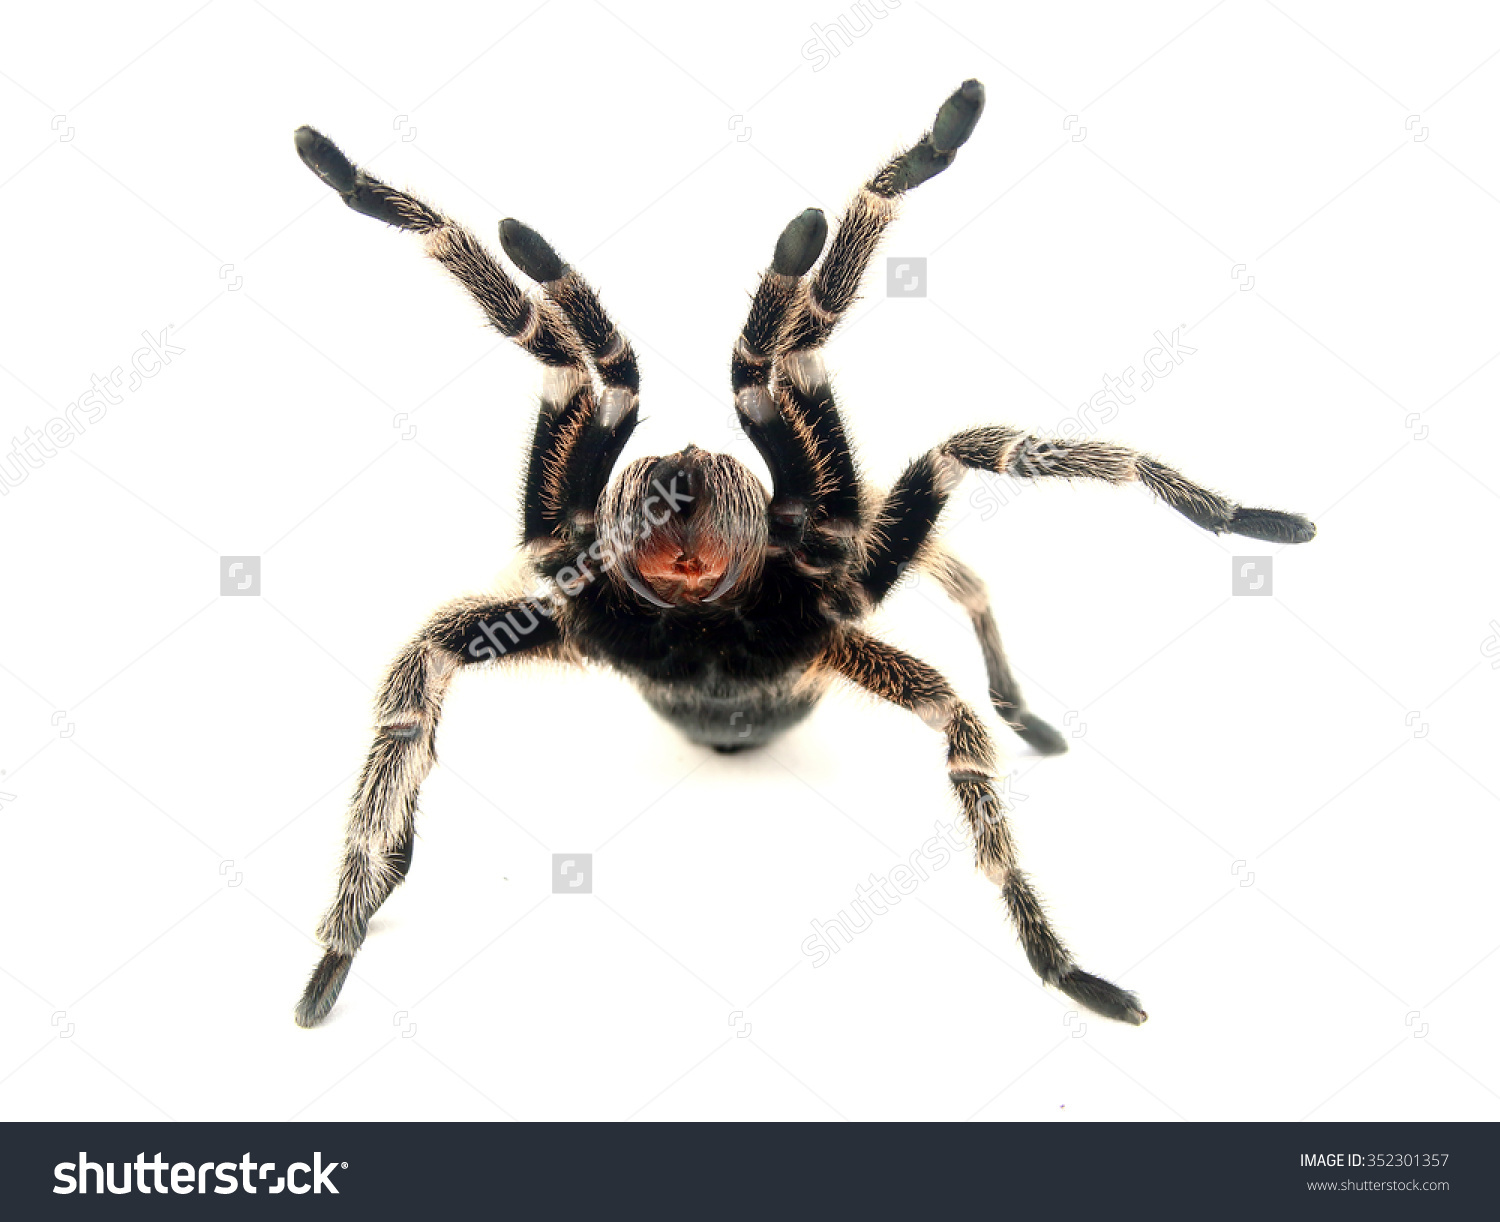 Chilean Rose Tarantula clipart #2, Download drawings